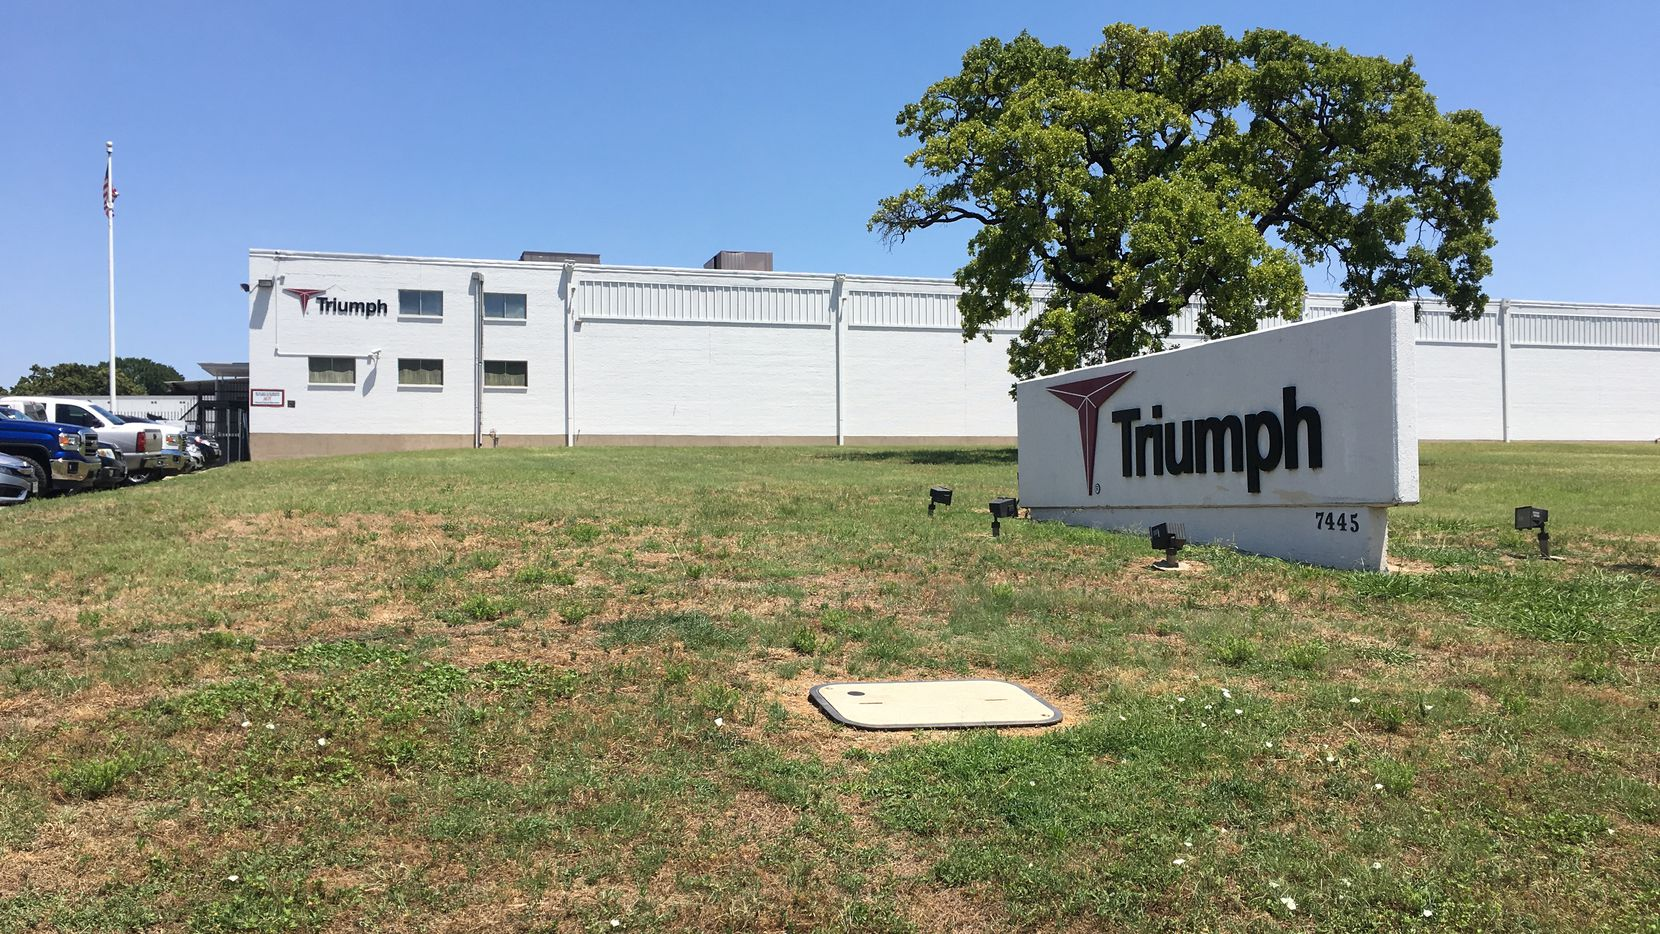 Triumph Group's fabrication site in Fort Worth is one of several locations being sold as part of a transaction announced Jan. 28, 2019.